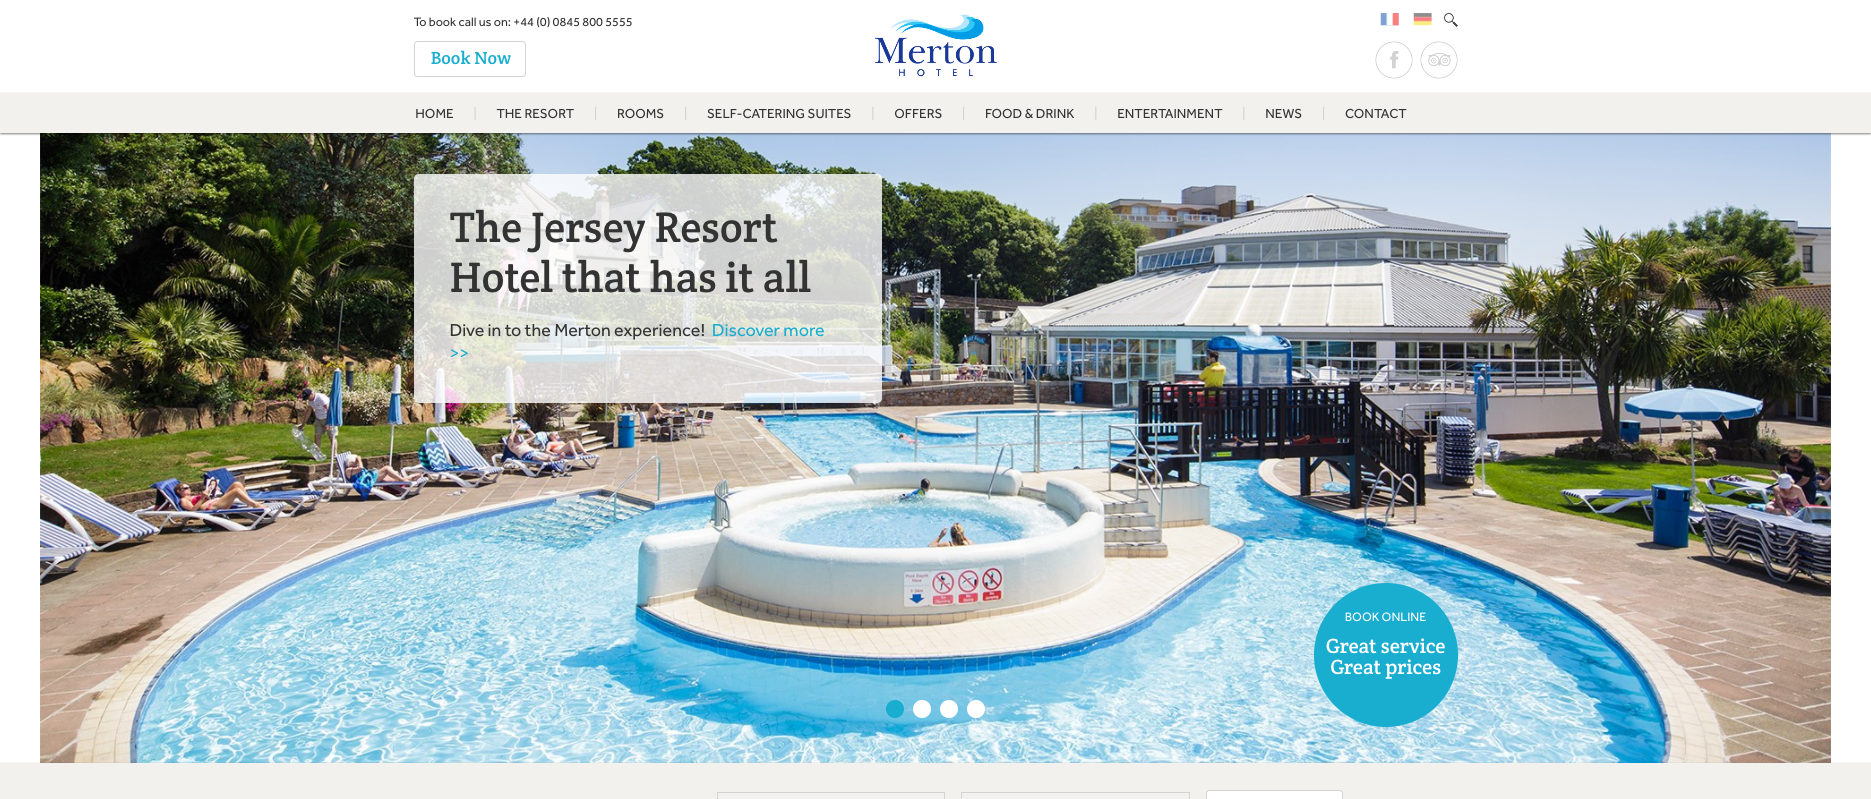 Merton Hotel - The Jersey 3 star resort hotel that has it all